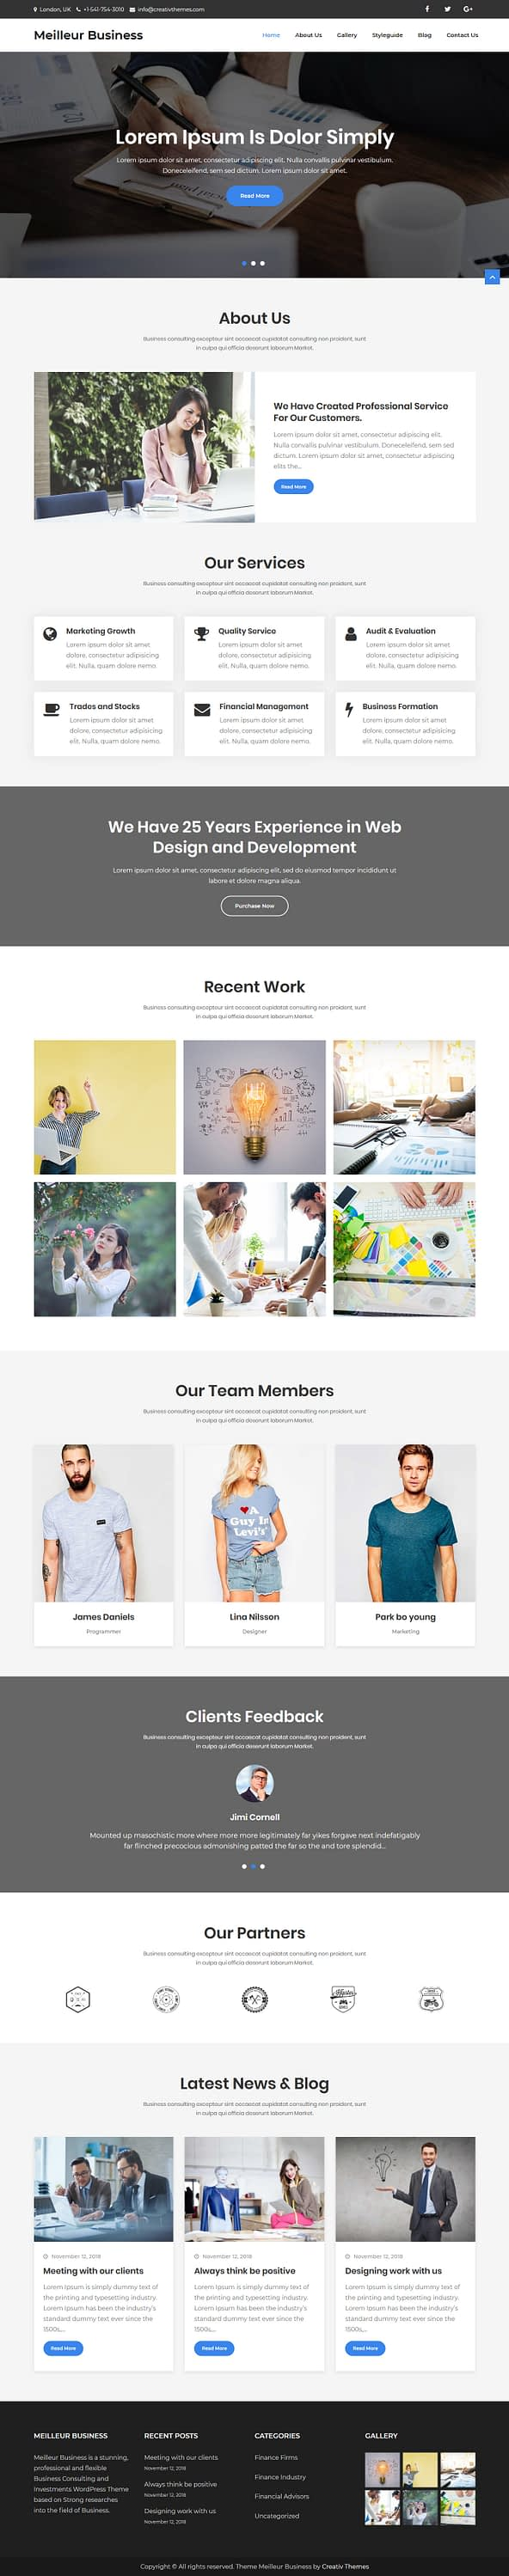 meilleur business best free accounting wordpress theme - 10+ Best Free Accounting WordPress Themes